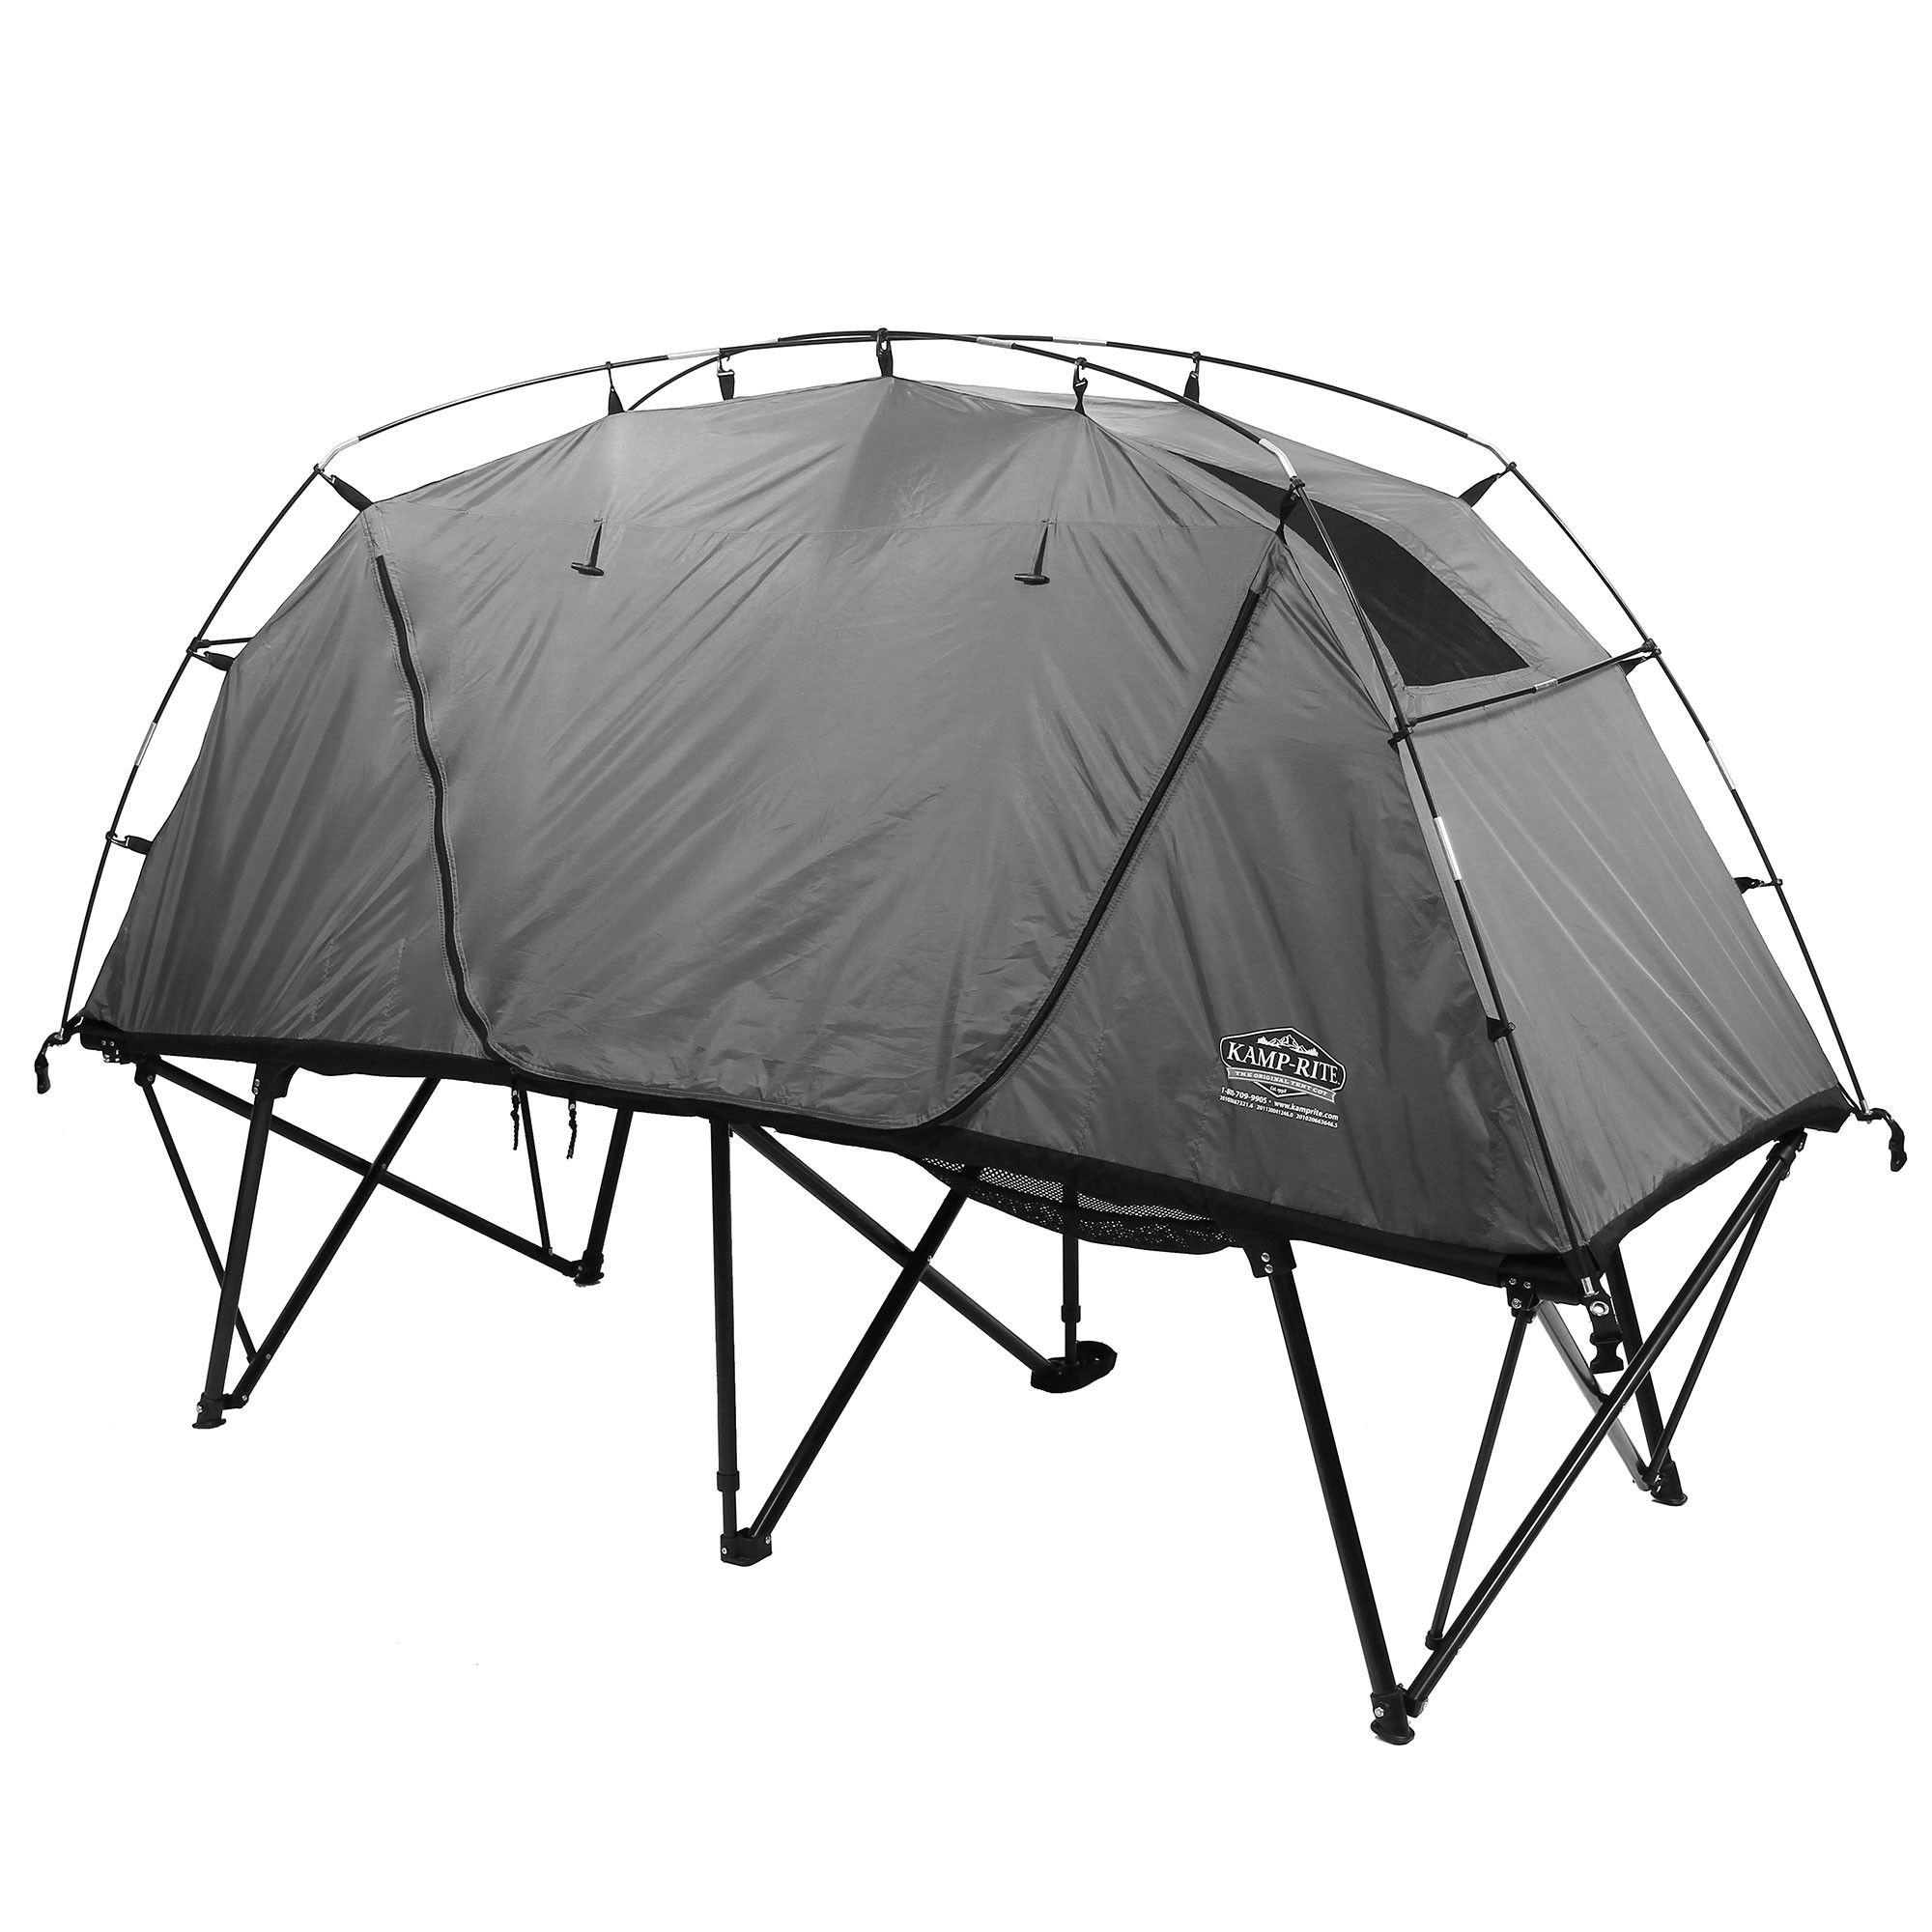 New Companion Pro Hiker 1 Person Tent Polyester Camping Canopy Campsite Hiking Sporting Goods